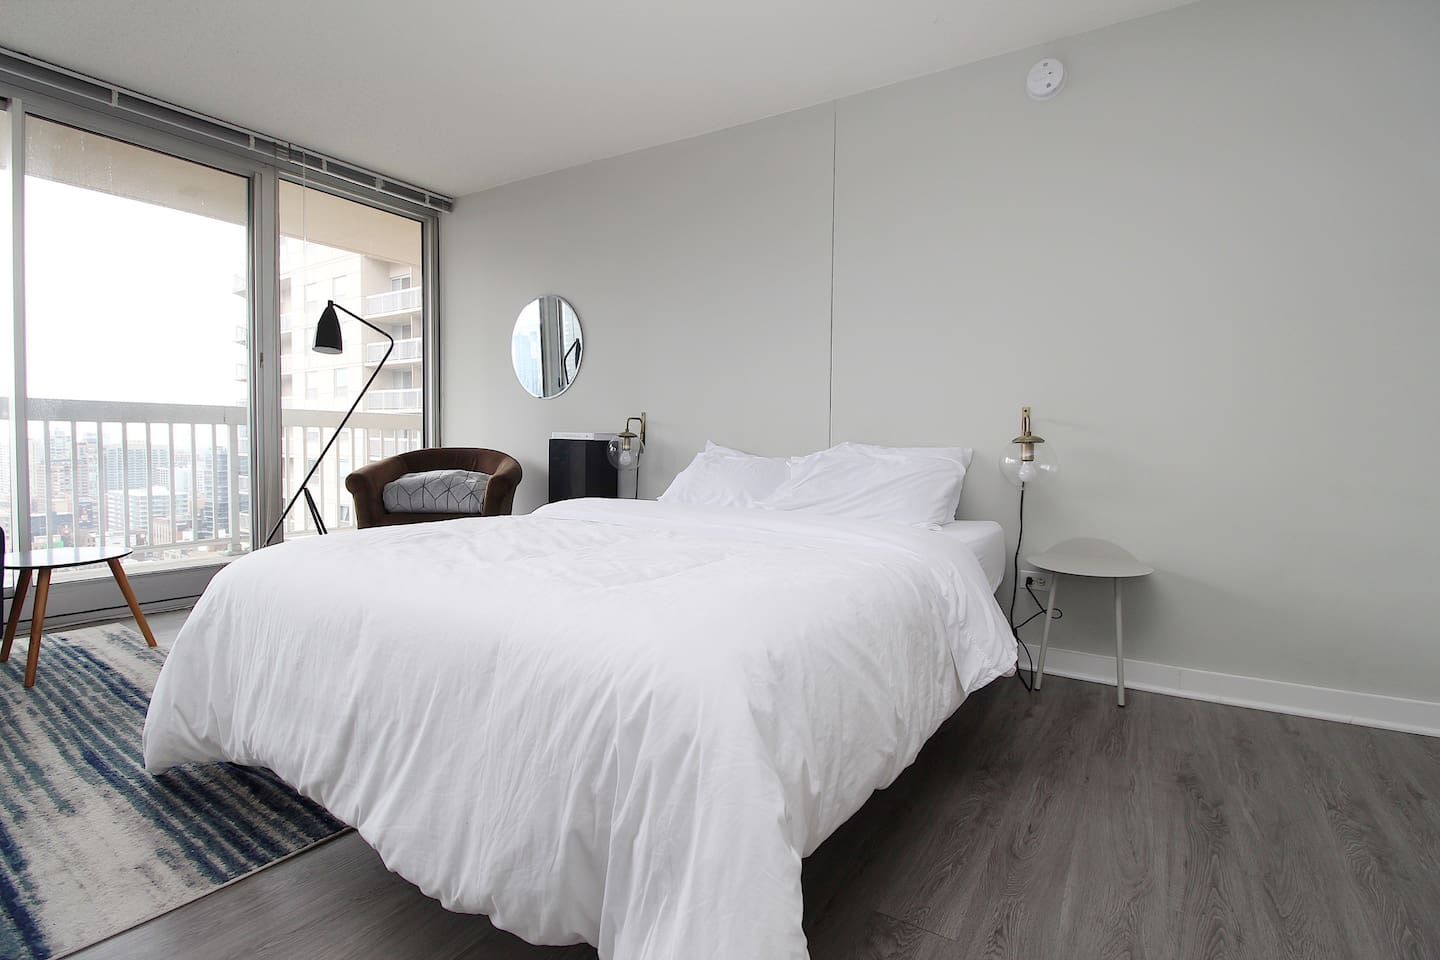 """What an amazing space for staying in the city!  Within walking distance from everything and the view from this apartment was amazing.  It really was better than staying at a hotel and the space was so incredibly clean. I would highly recommend."""